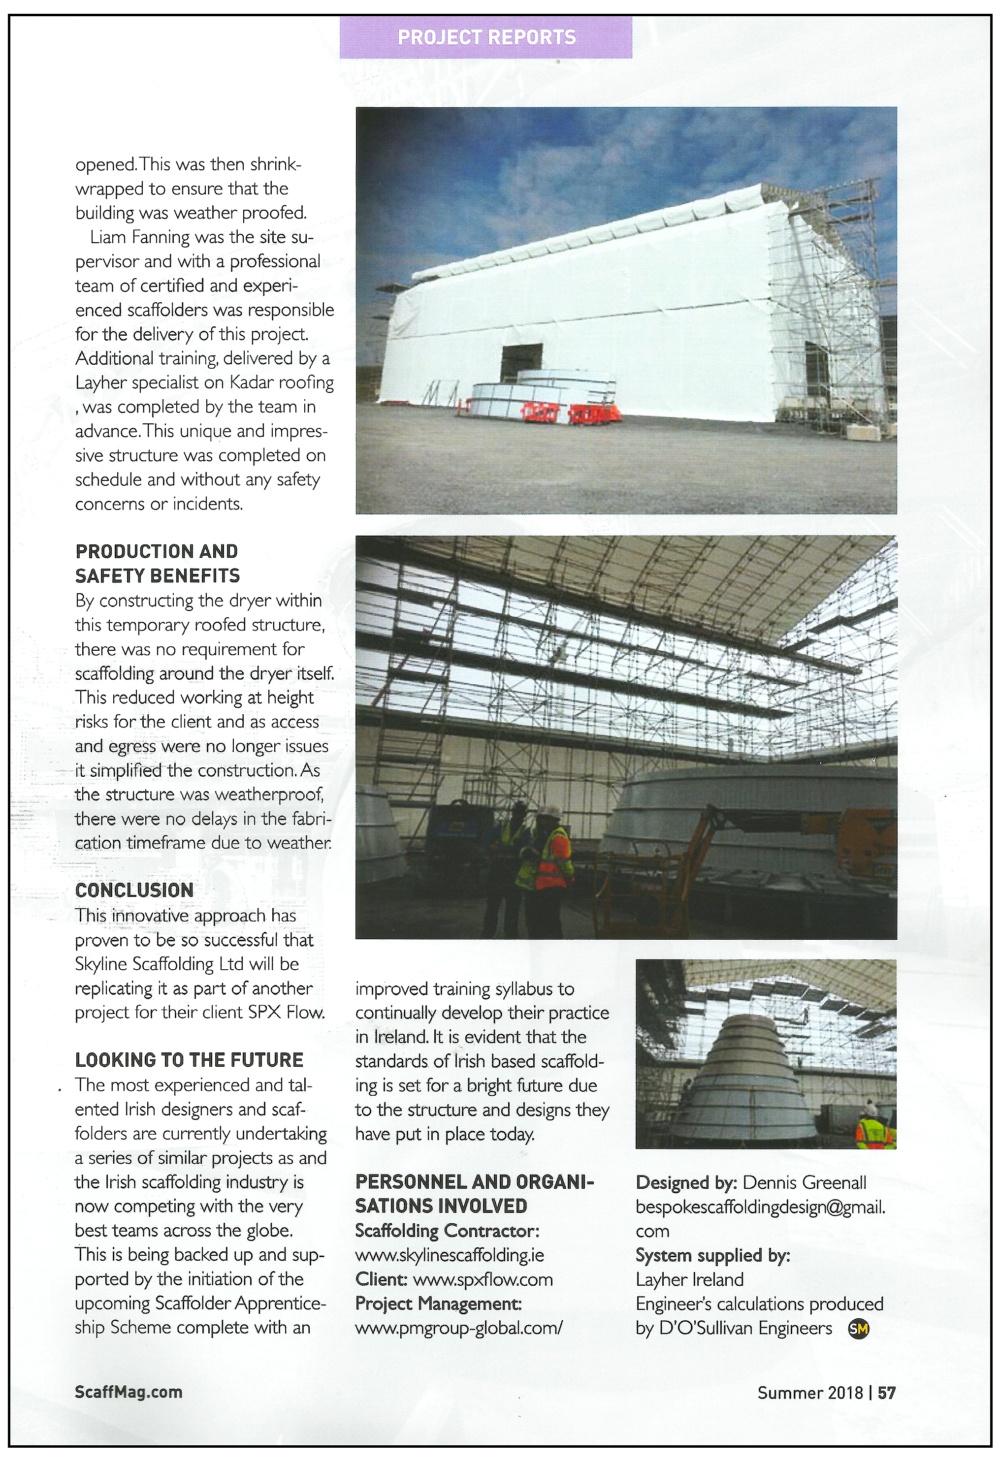 Skyline Scaffolding article ScaffMag 2018 page 2